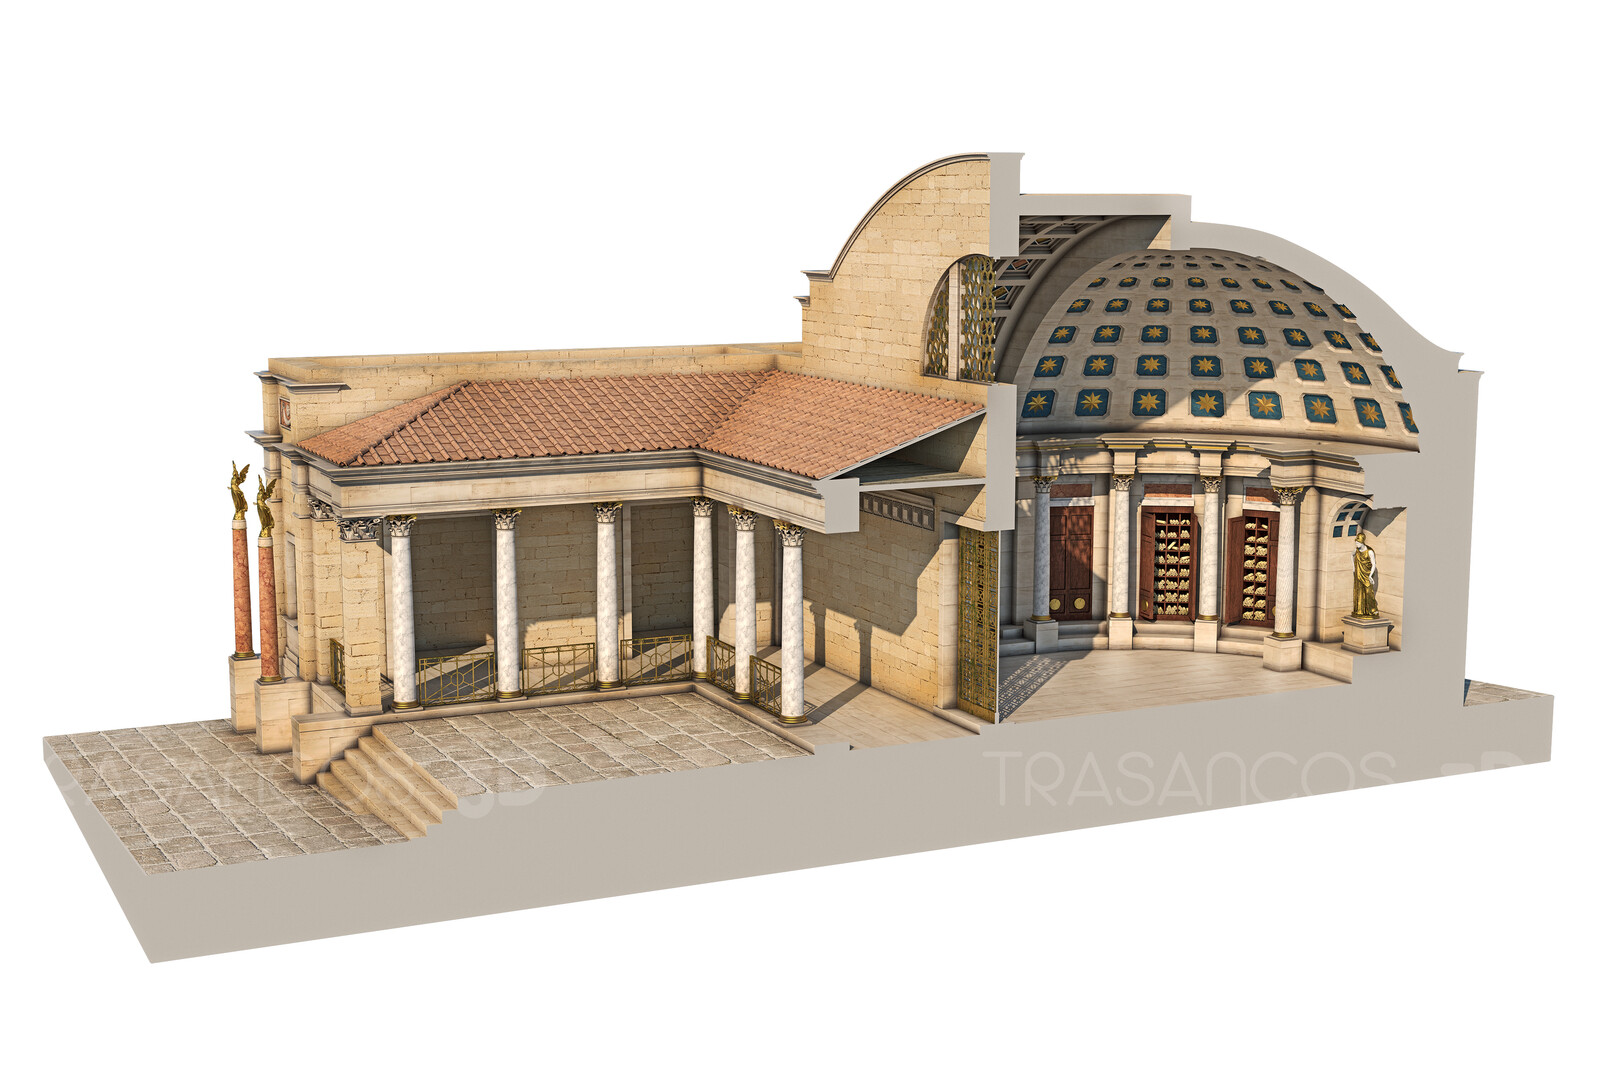 Cut away of the Public Library of Timgad. Modeled in collaboration with: - Diego Blanco